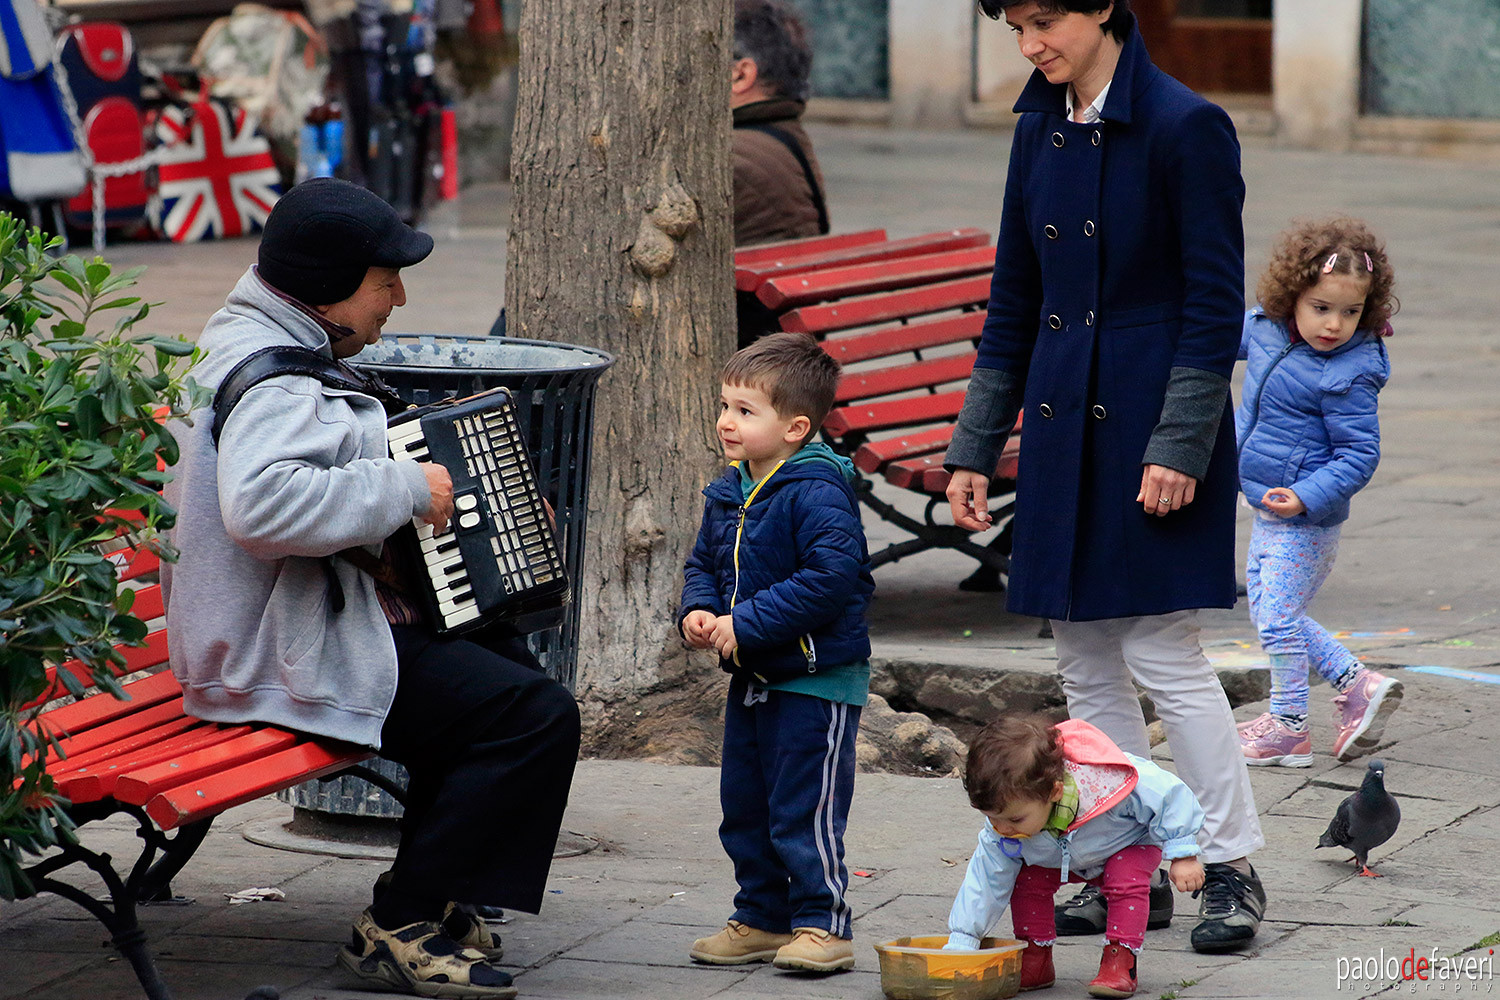 Venice_Italy_Accordion_Player_Kids_Canna